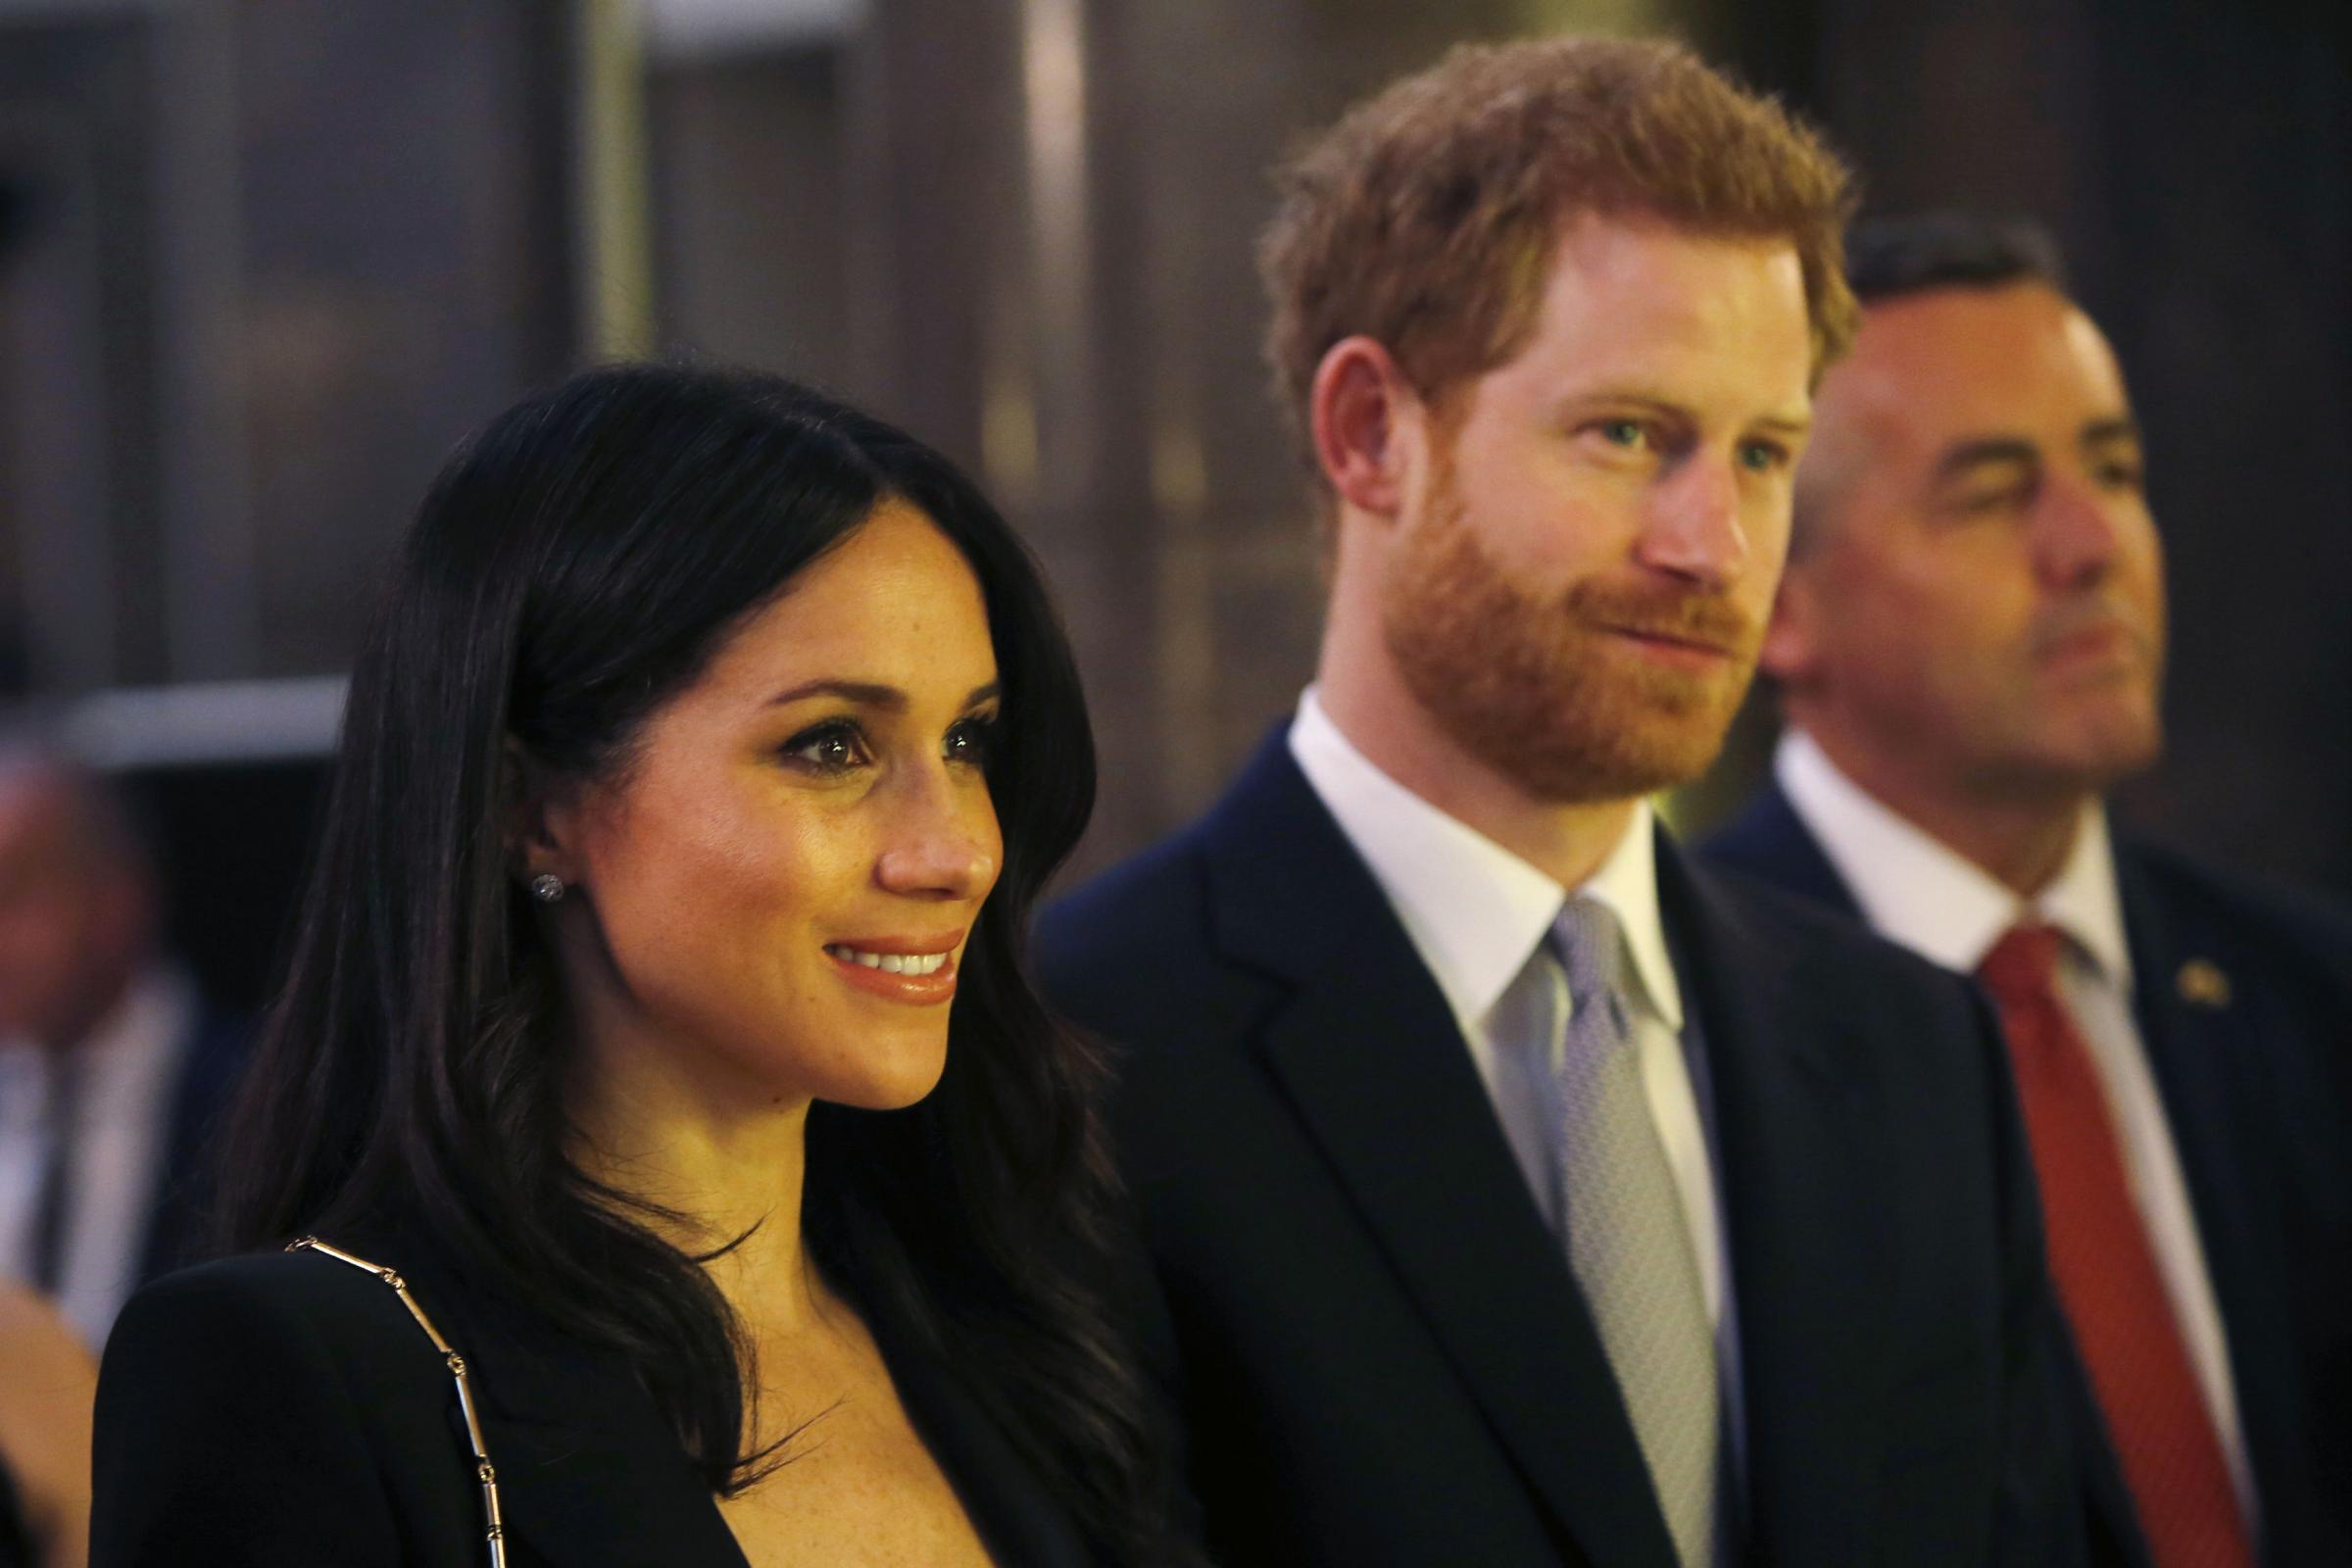 Prince Harry and Meghan Markle attend a reception hosted by Australian prime minister Malcolm Turnbull and his wife Lucy (Alastair Grant/PA)